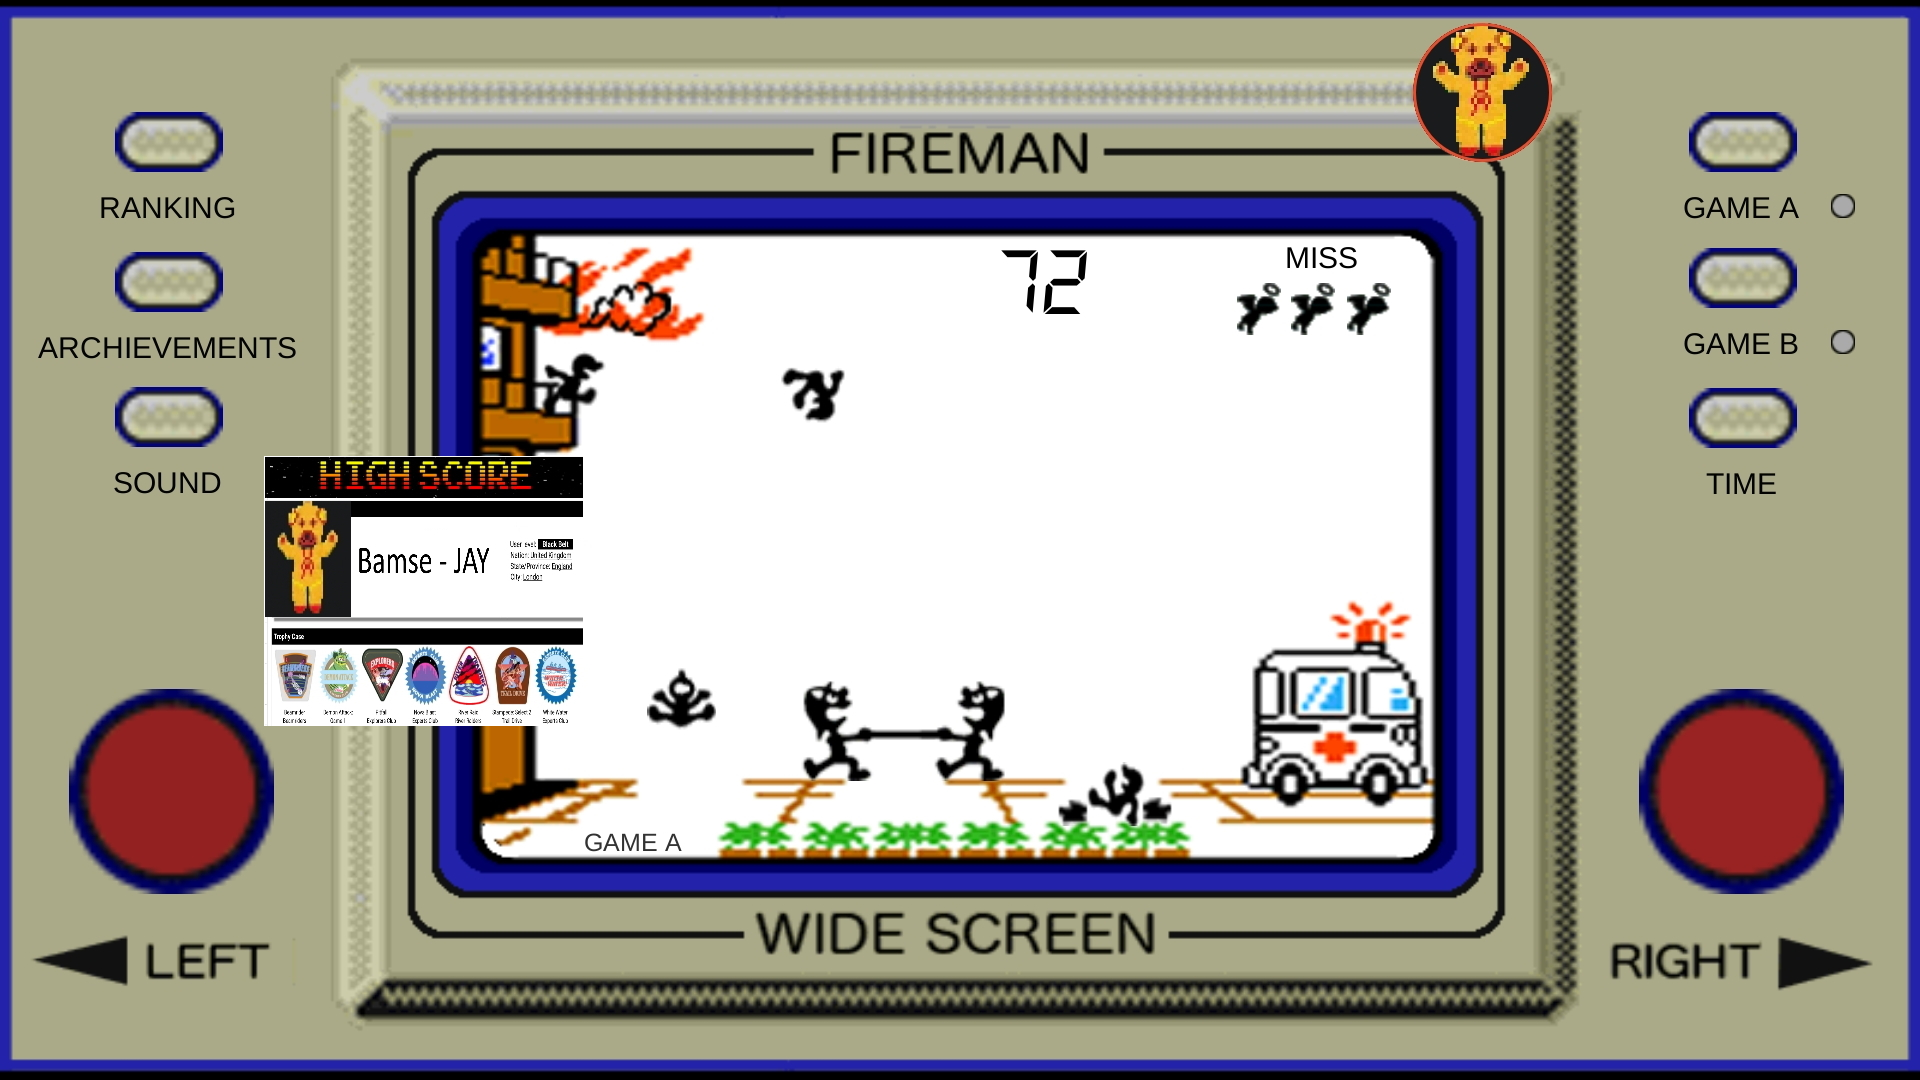 Bamse: Game & Watch: Fire [aka Fireman Fireman] [Game A] (Dedicated Handheld Emulated) 72 points on 2019-11-17 18:45:09